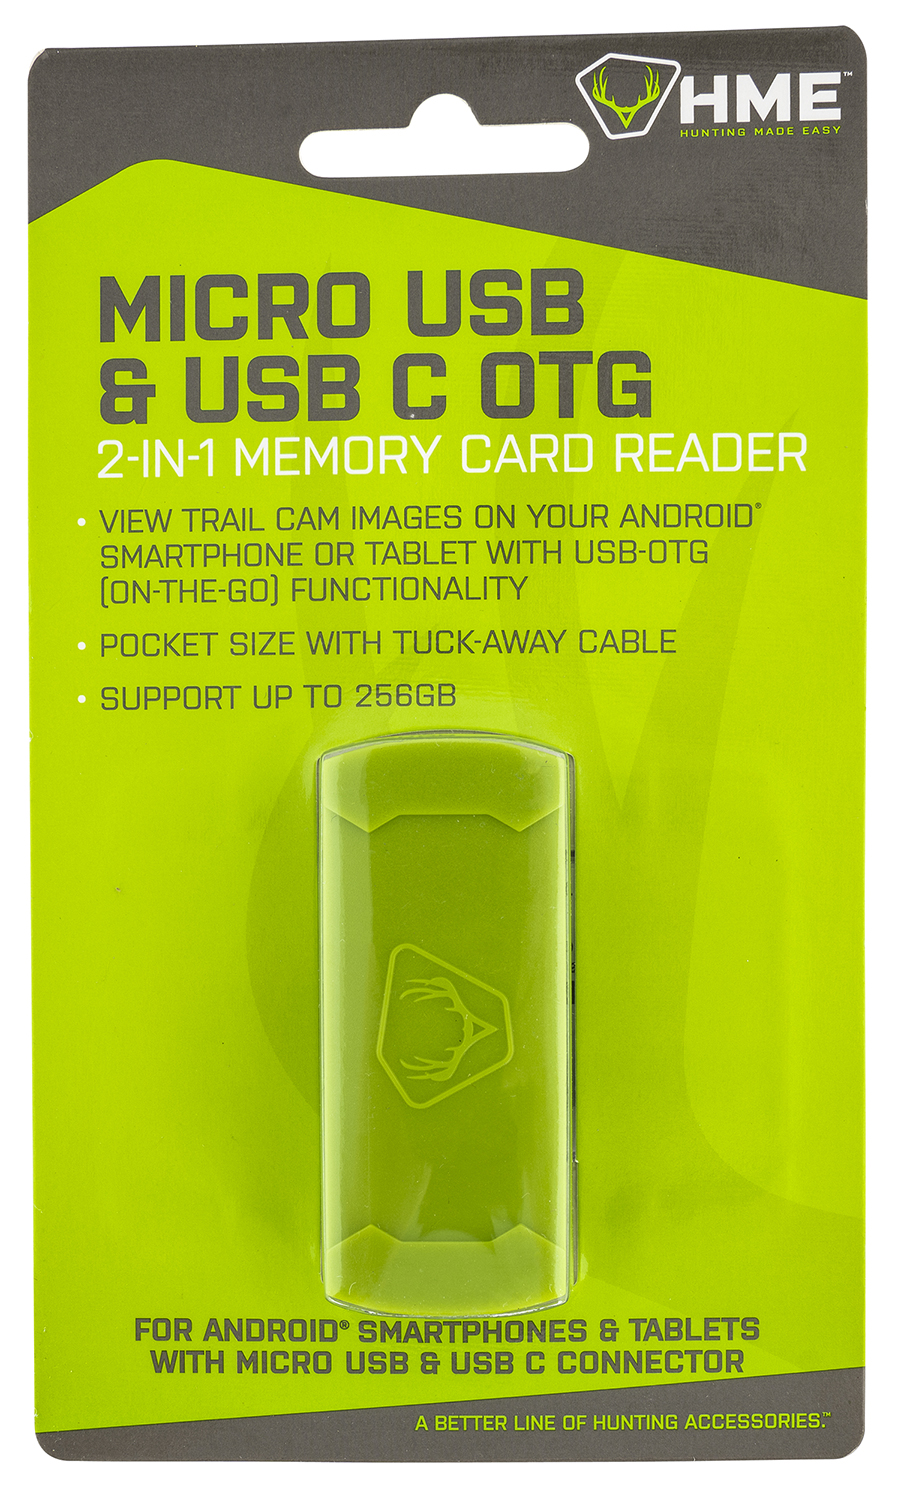 HME HME-SDCRAND Memory Card Reader Android Up To 256GB Black/Green